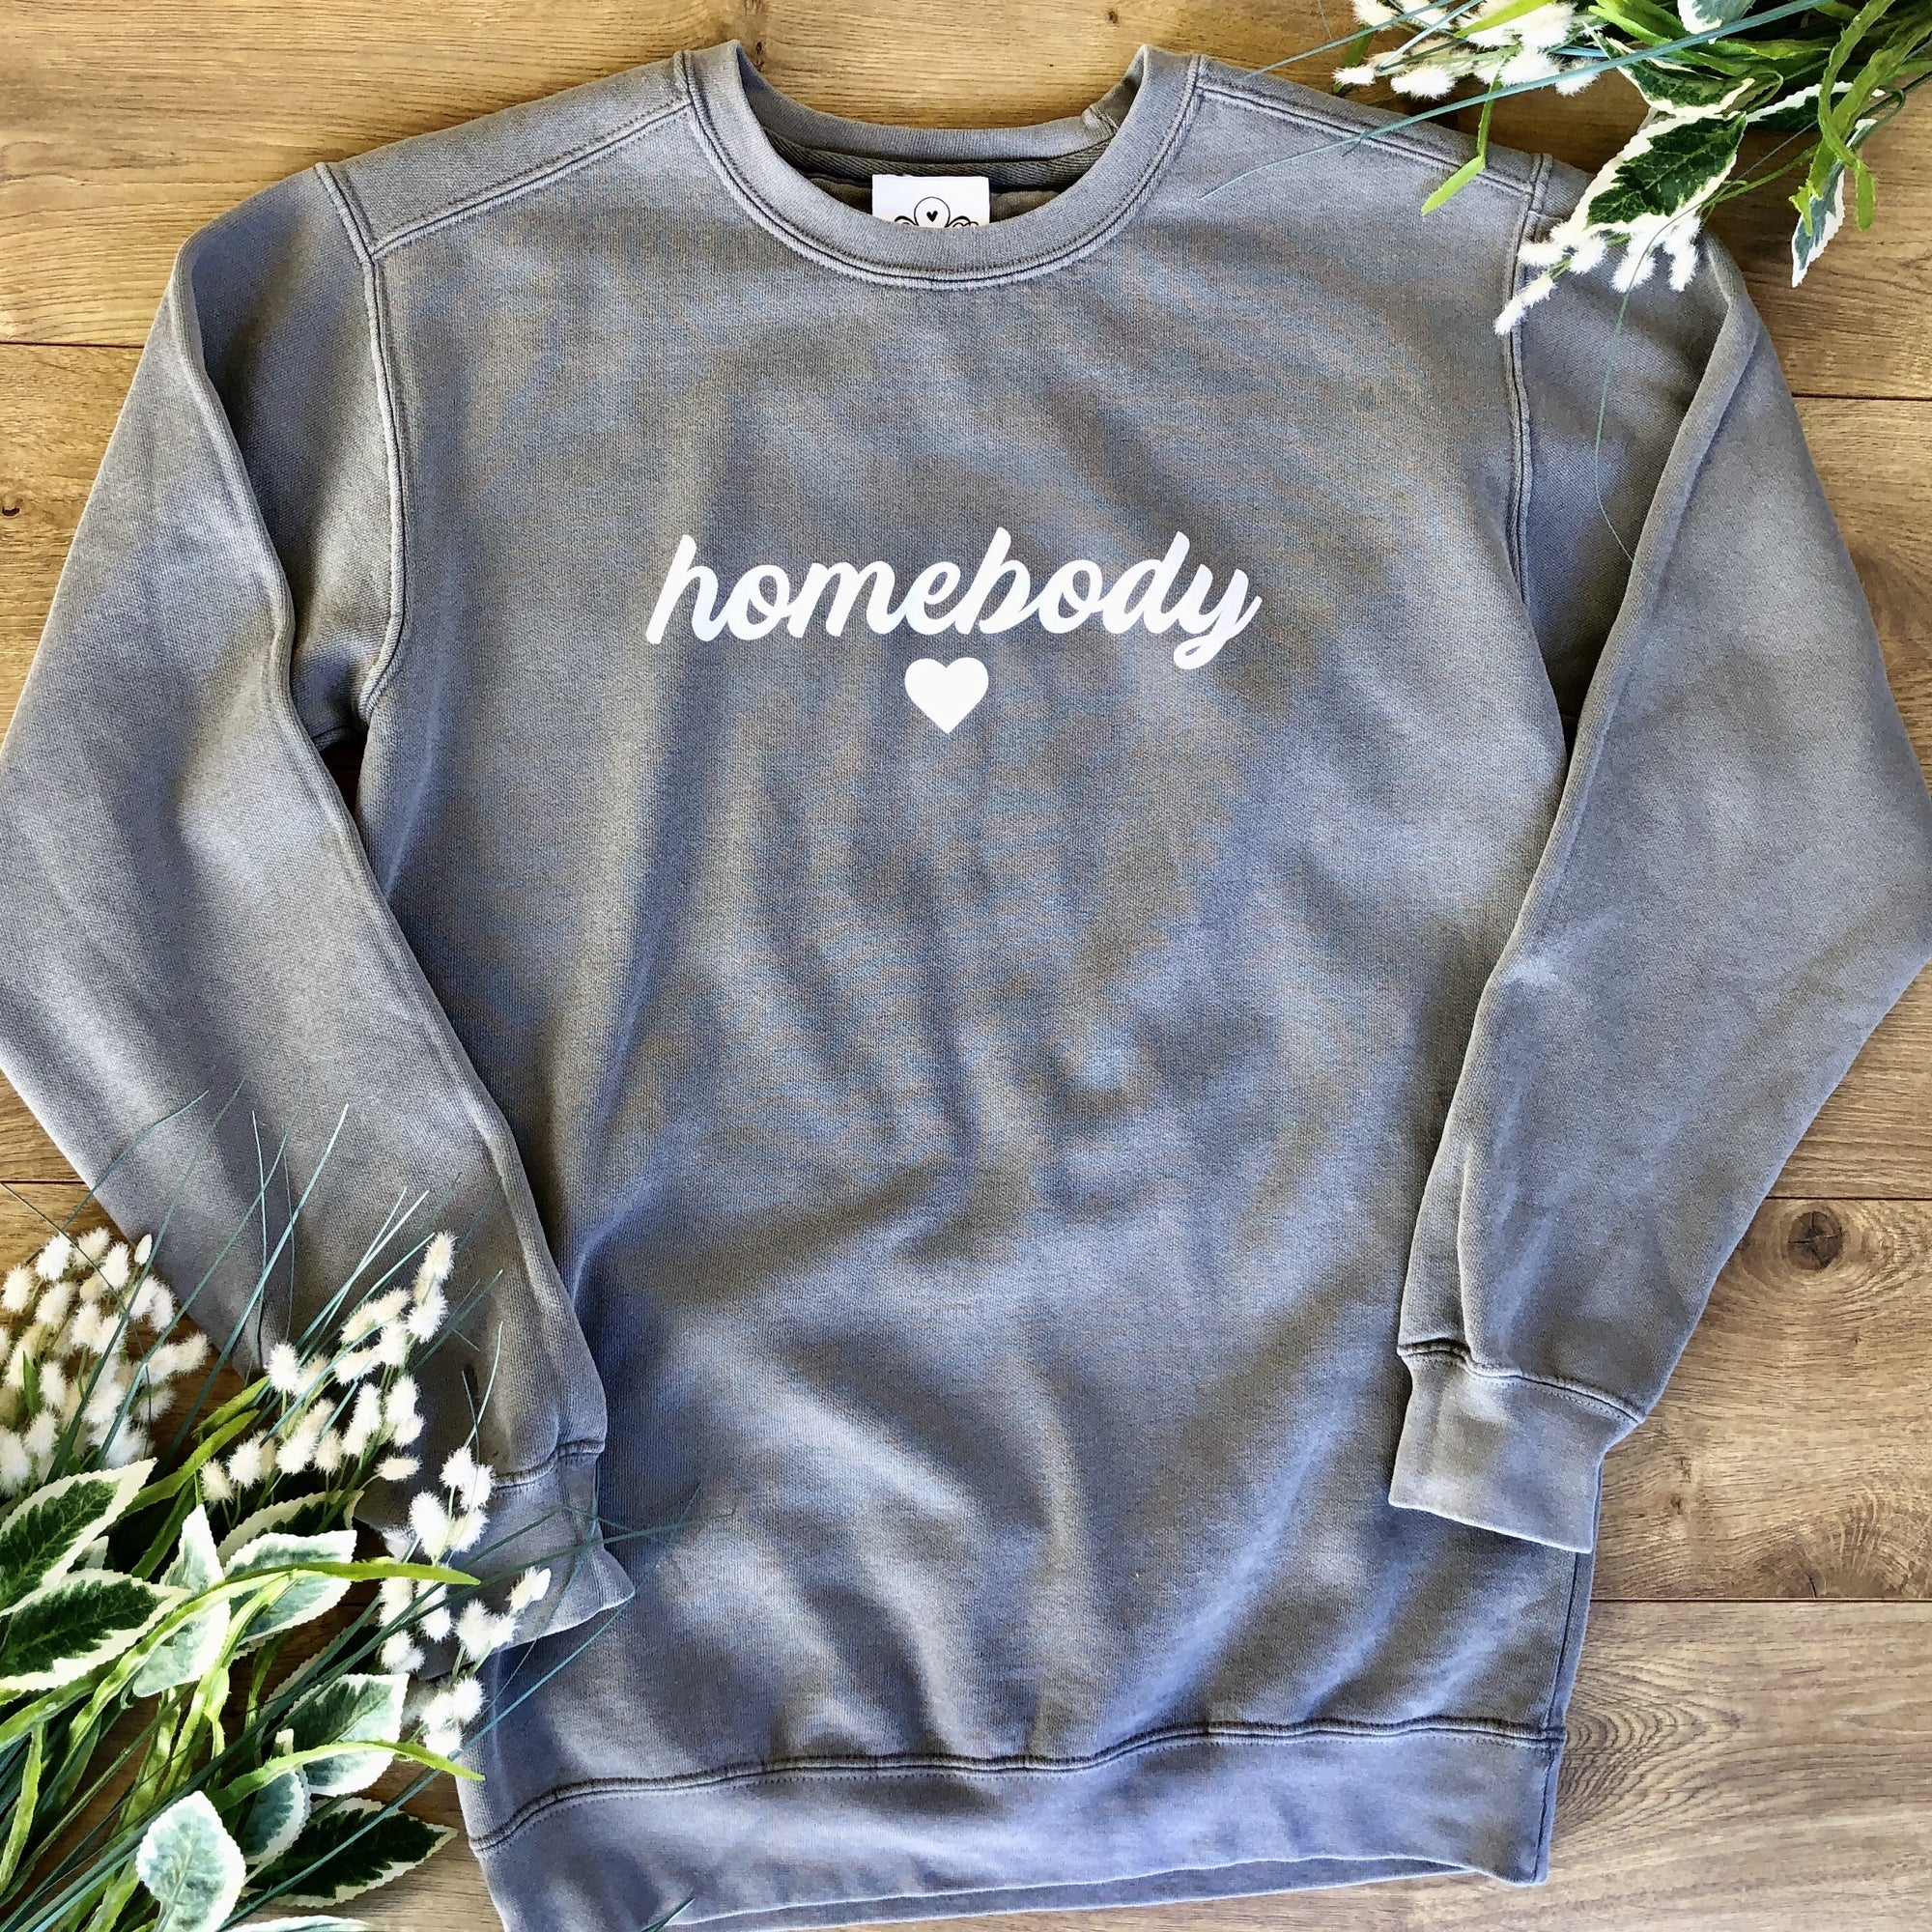 Loungewear Sweatshirt Homebody Grey